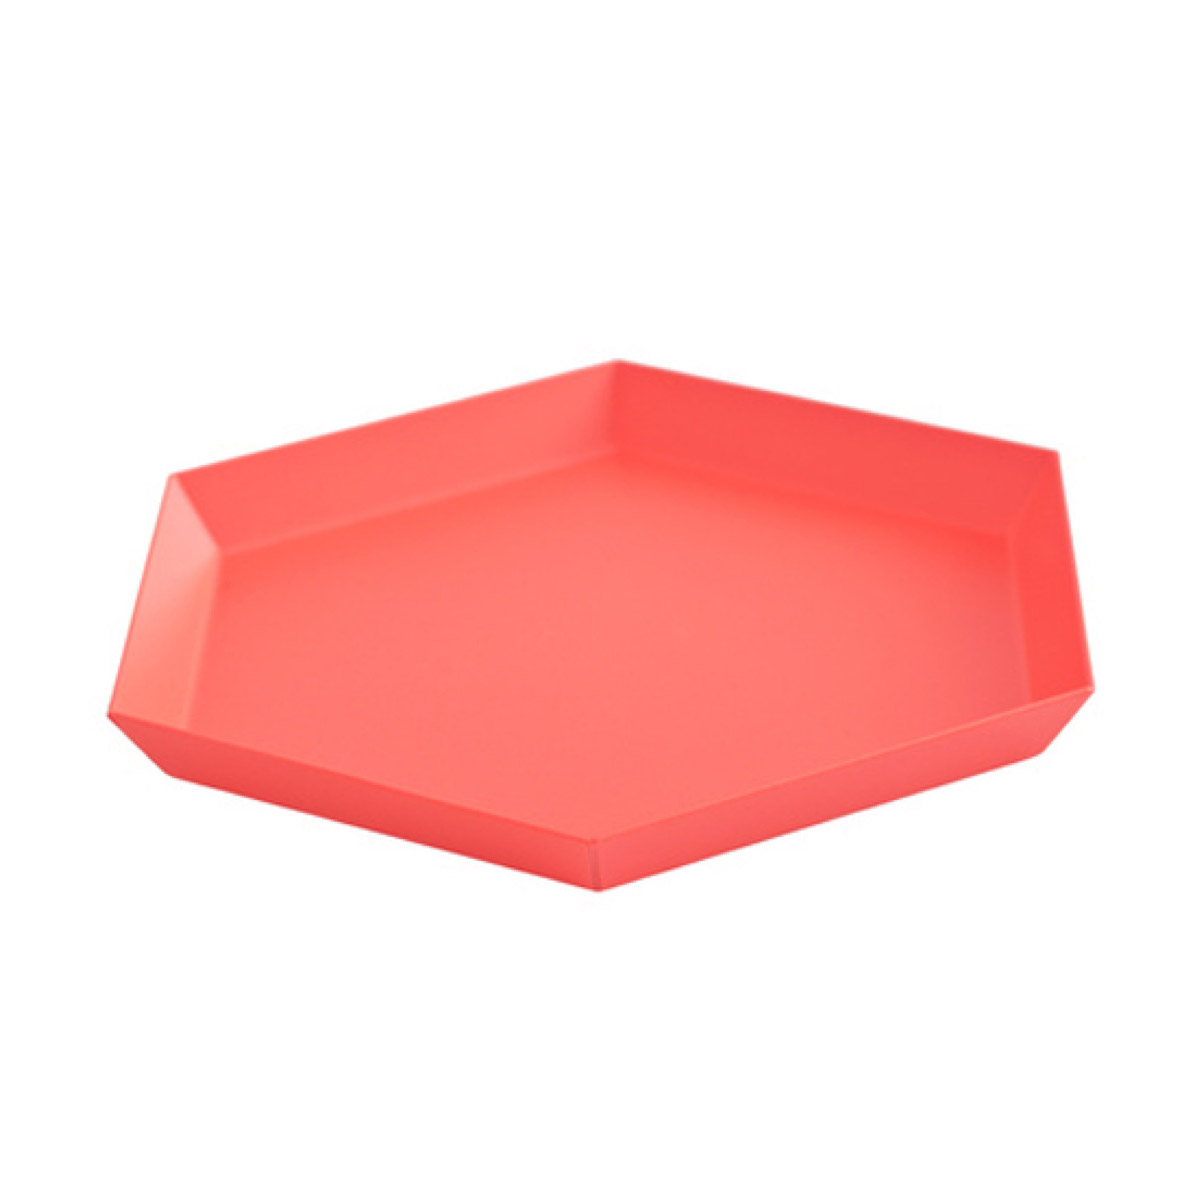 Kaleido small tray